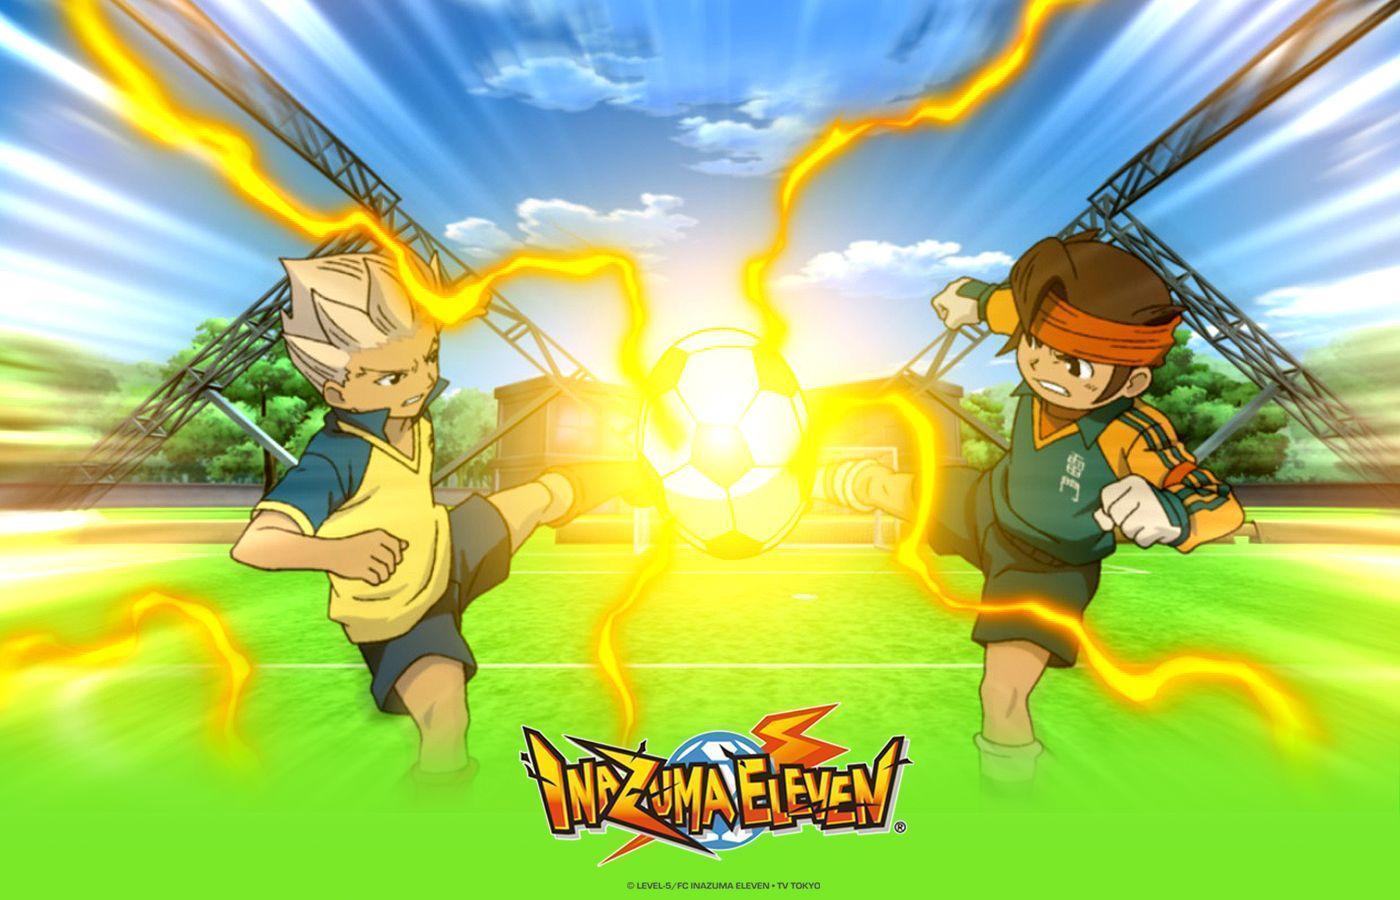 Hd wallpapers quotes funny - Pics Photos Inazuma Eleven Wallpapers